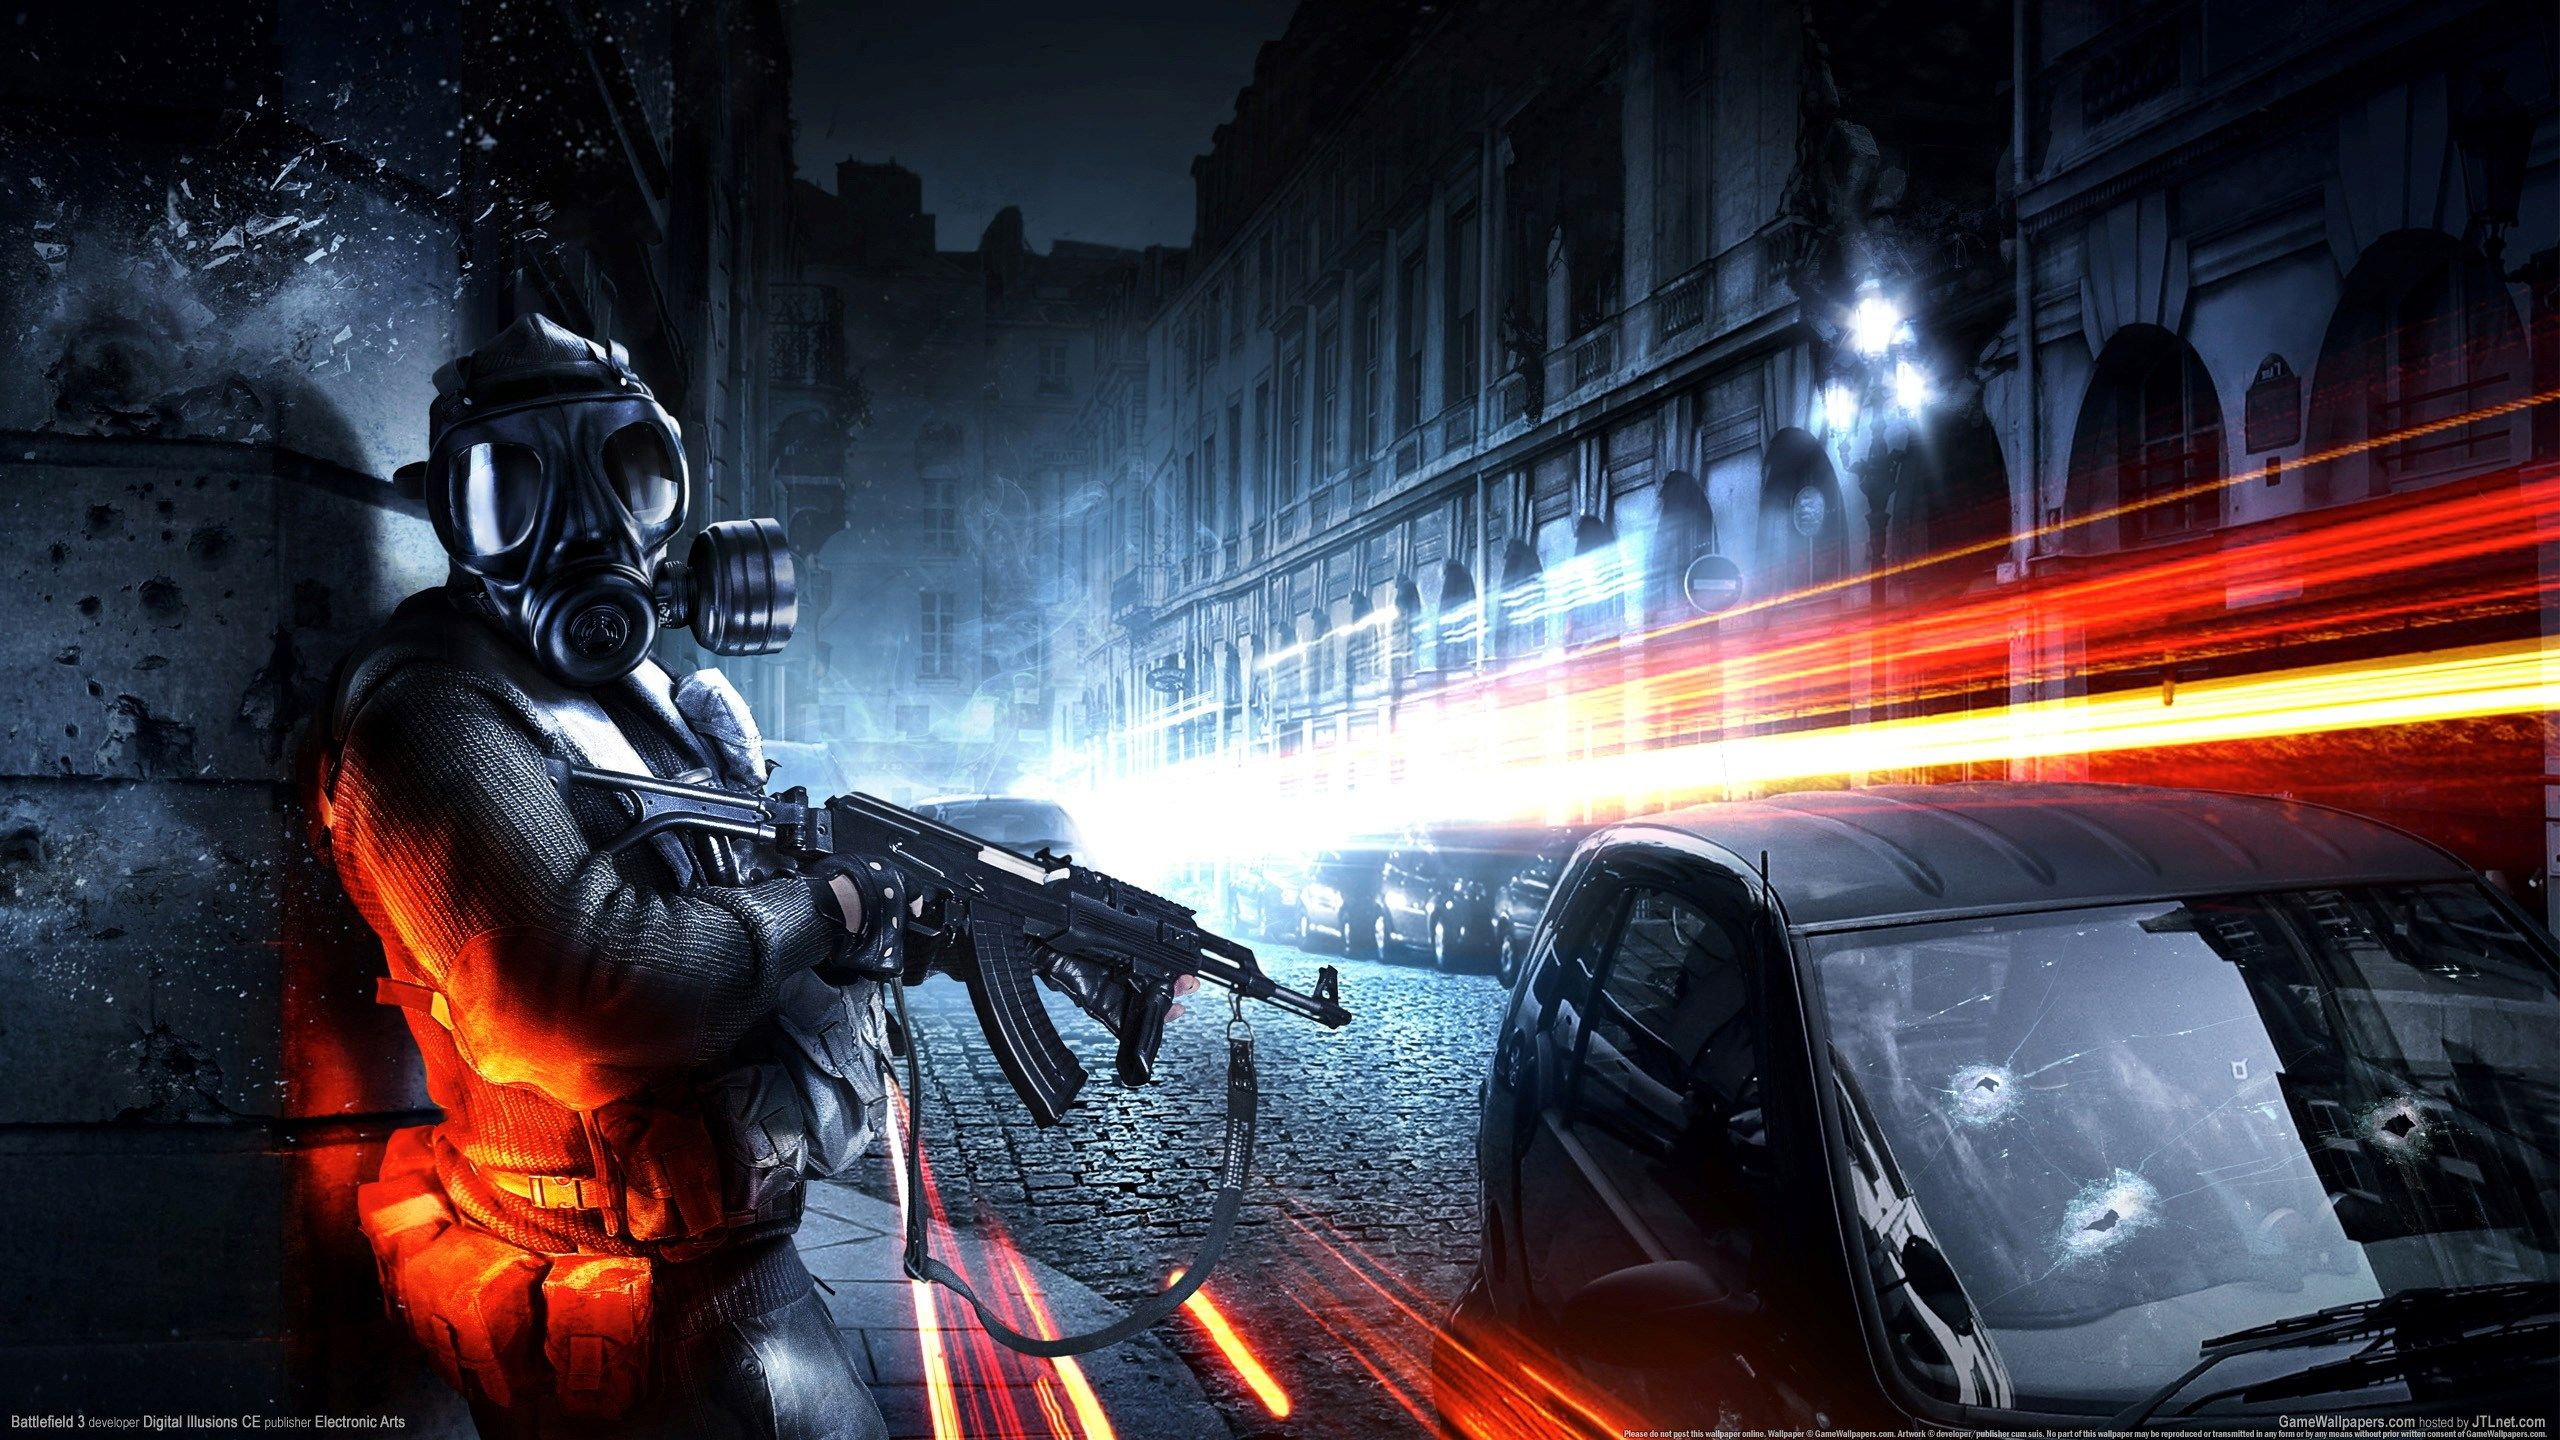 winchell gill - battlefield 3 macbook wallpapers hd - 2560x1440 px